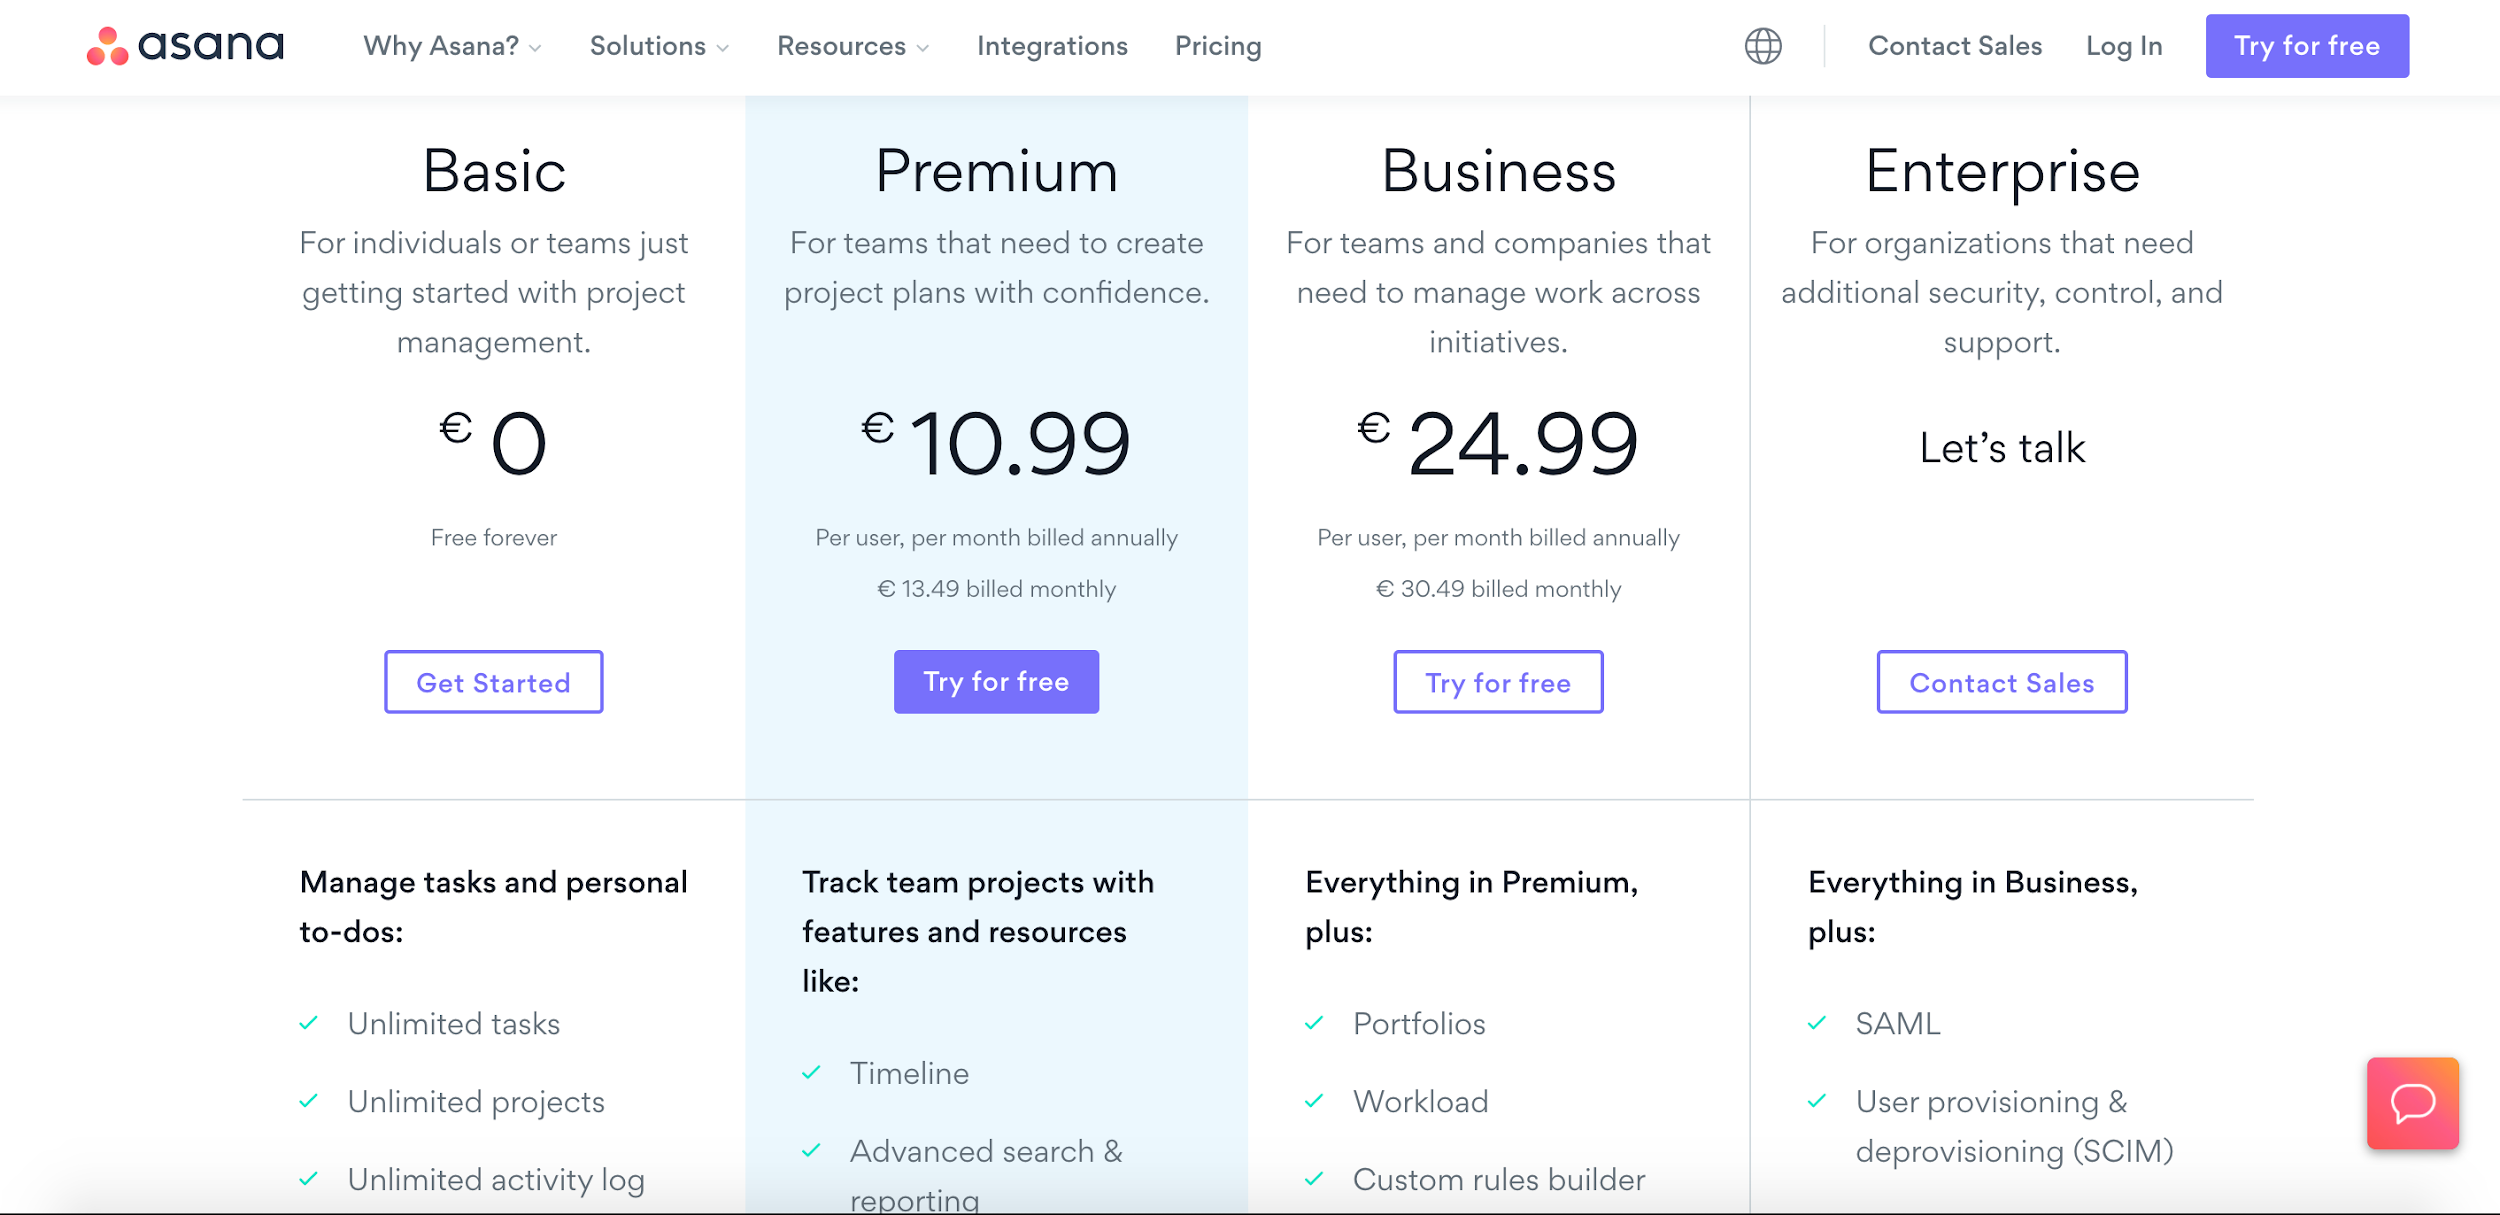 asana saas pricing models